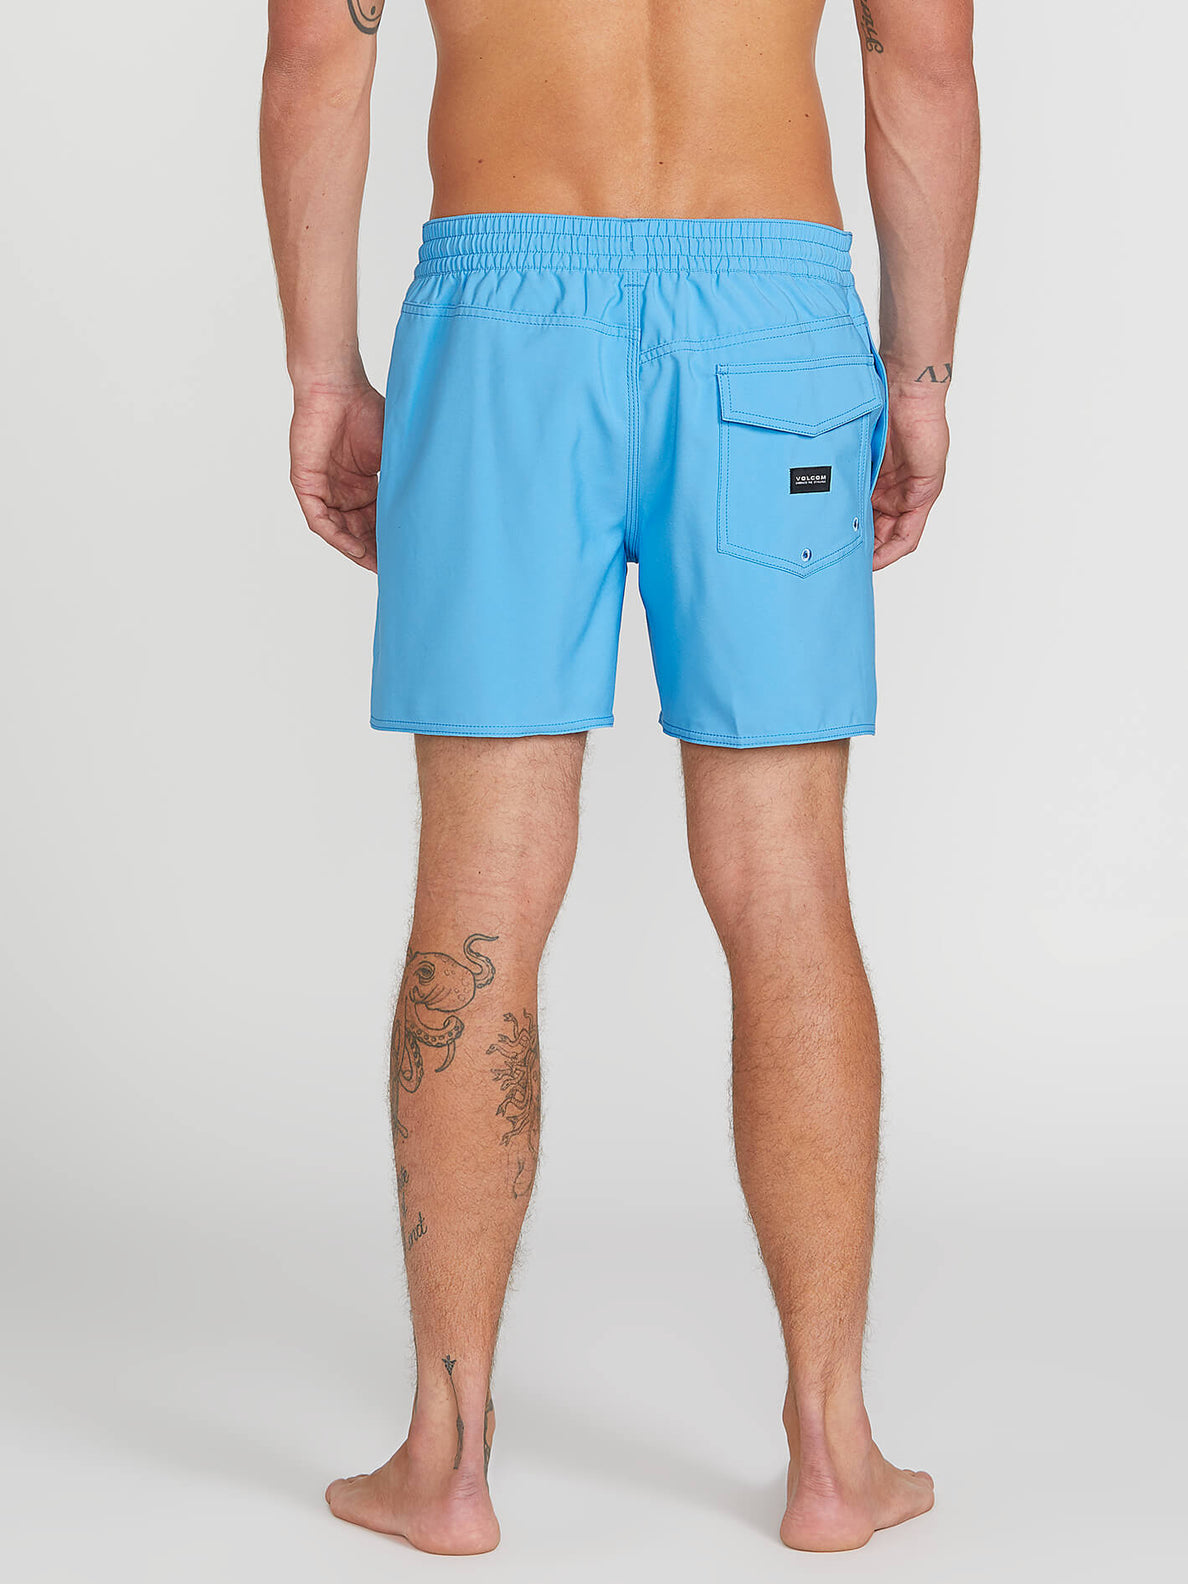 Lido Trunks - Laguna Blue (A2511901_LAG) [2]